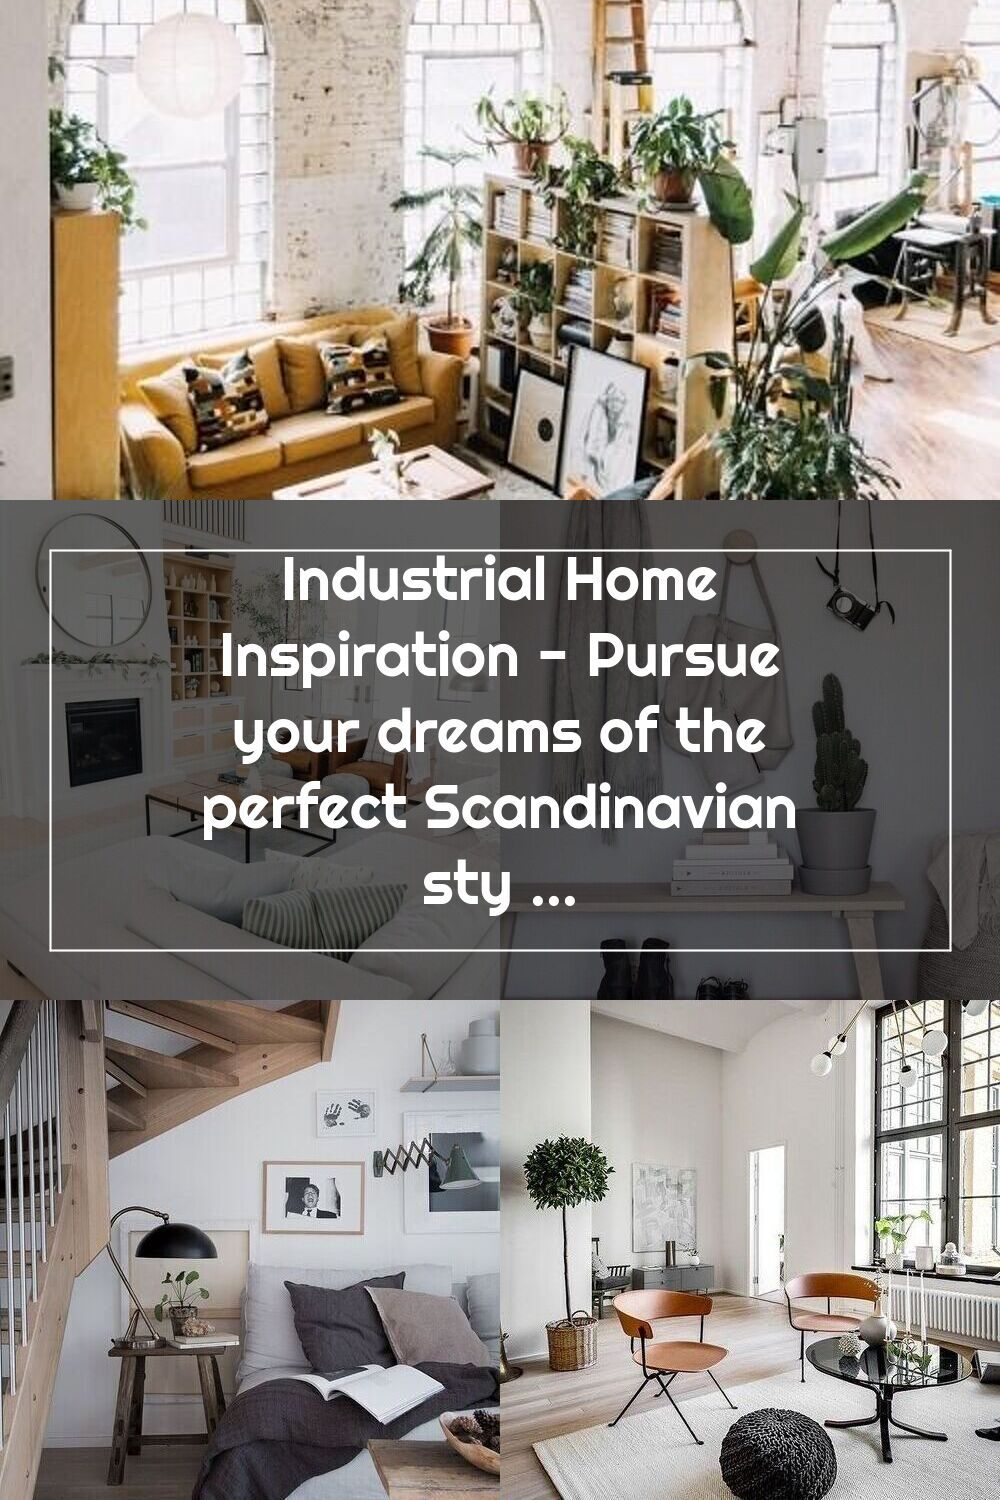 Industrial Home Inspiration Pursue Your Dreams Of The Perfect Scandinavia In 2020 Scandinavian Style Home Industrial House Home